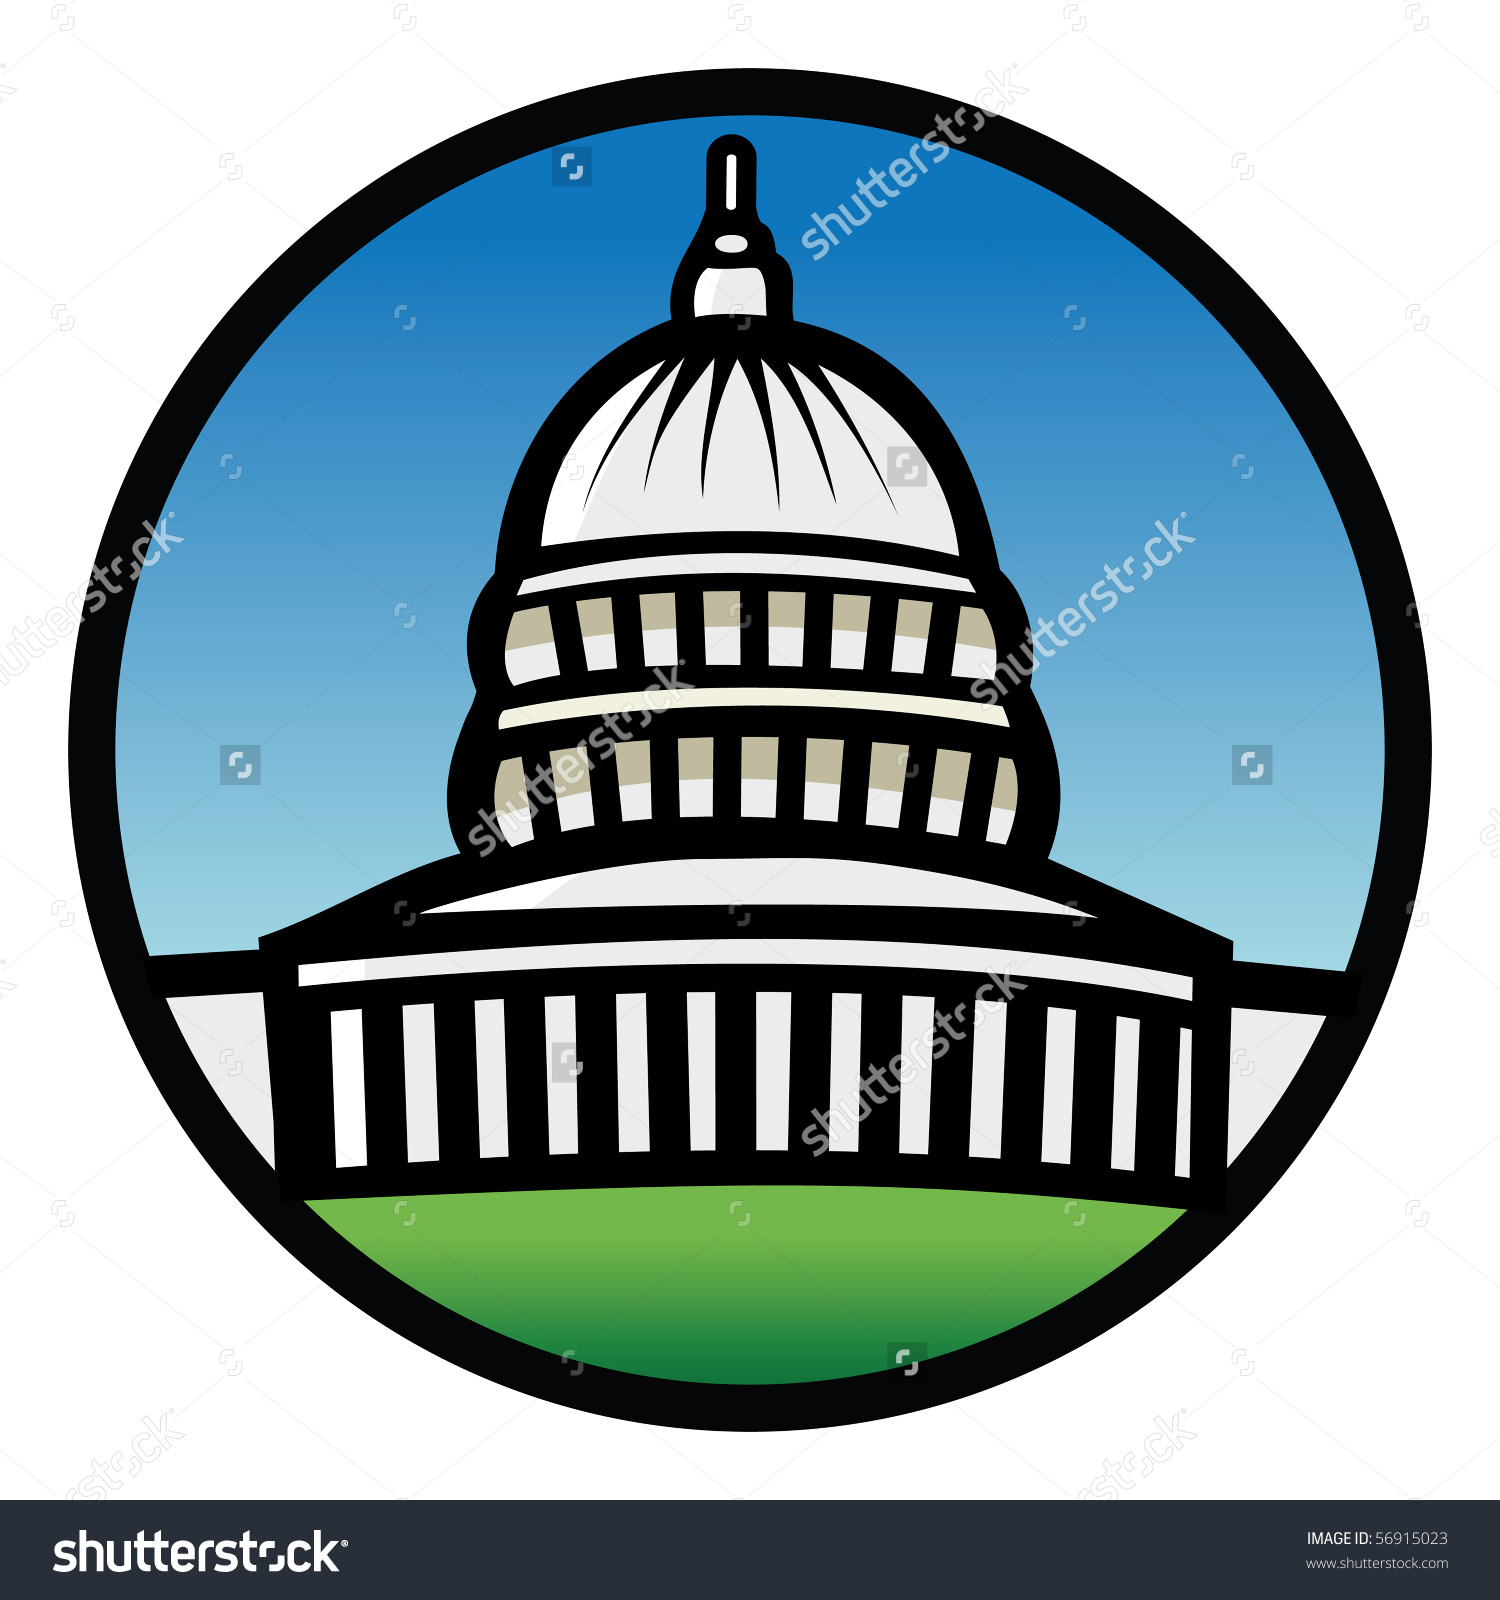 State capital clipart - Clipground